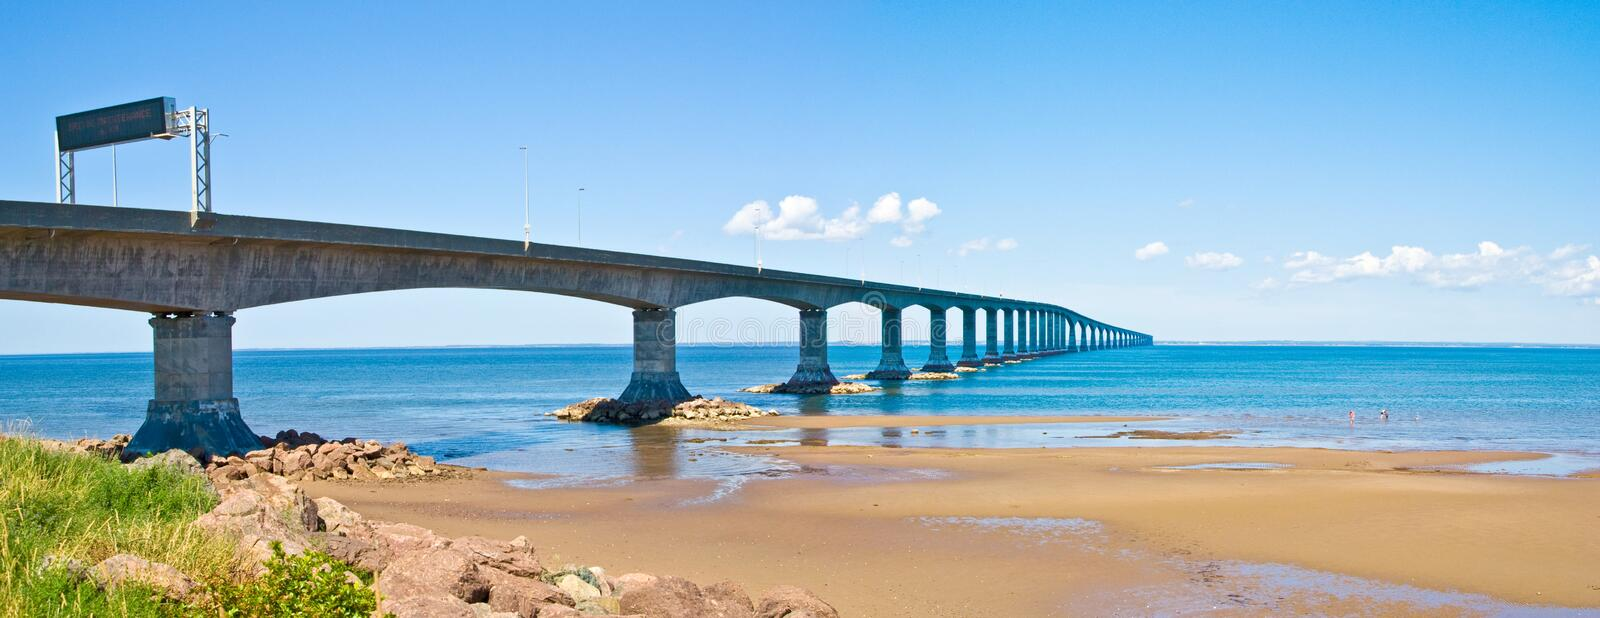 Prince Edward Island Confederation Bridge photo libre de droits